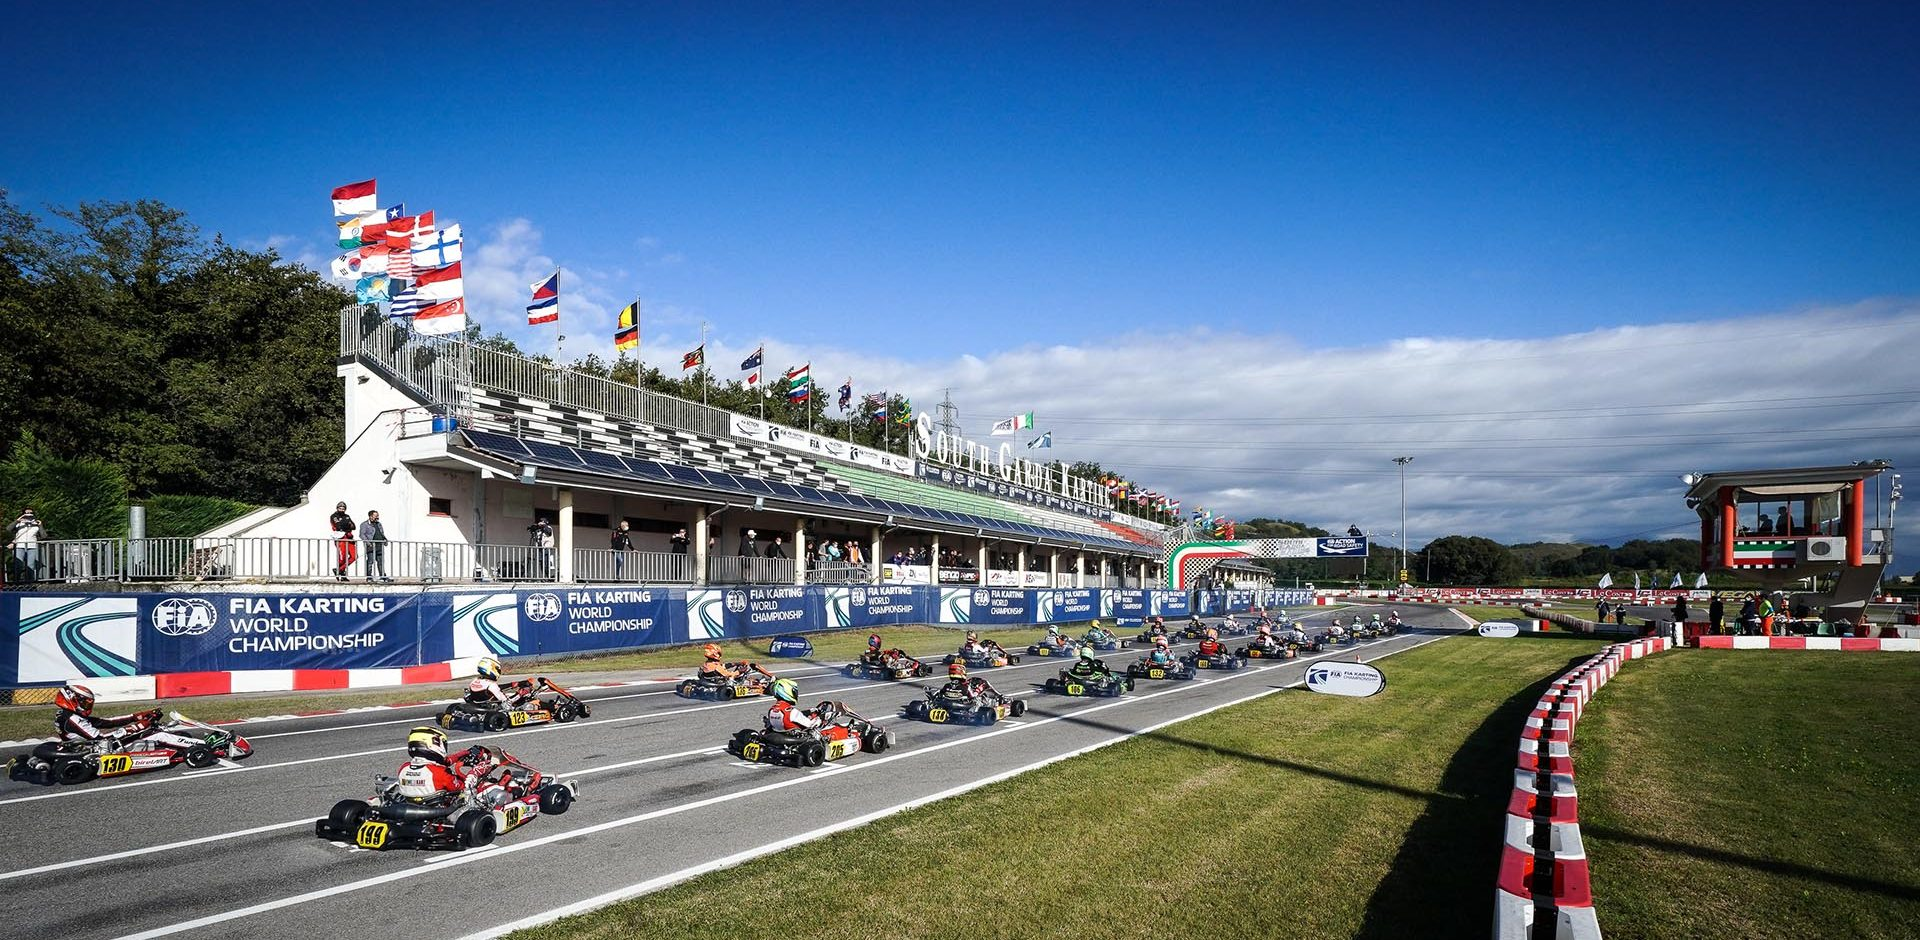 , , , , , FIA Karting World Championship – KZ, FIA Karting International Super Cup – KZ2 & FIA Karting Academy Trophy , LONATO, International Race, © KSP Reportages